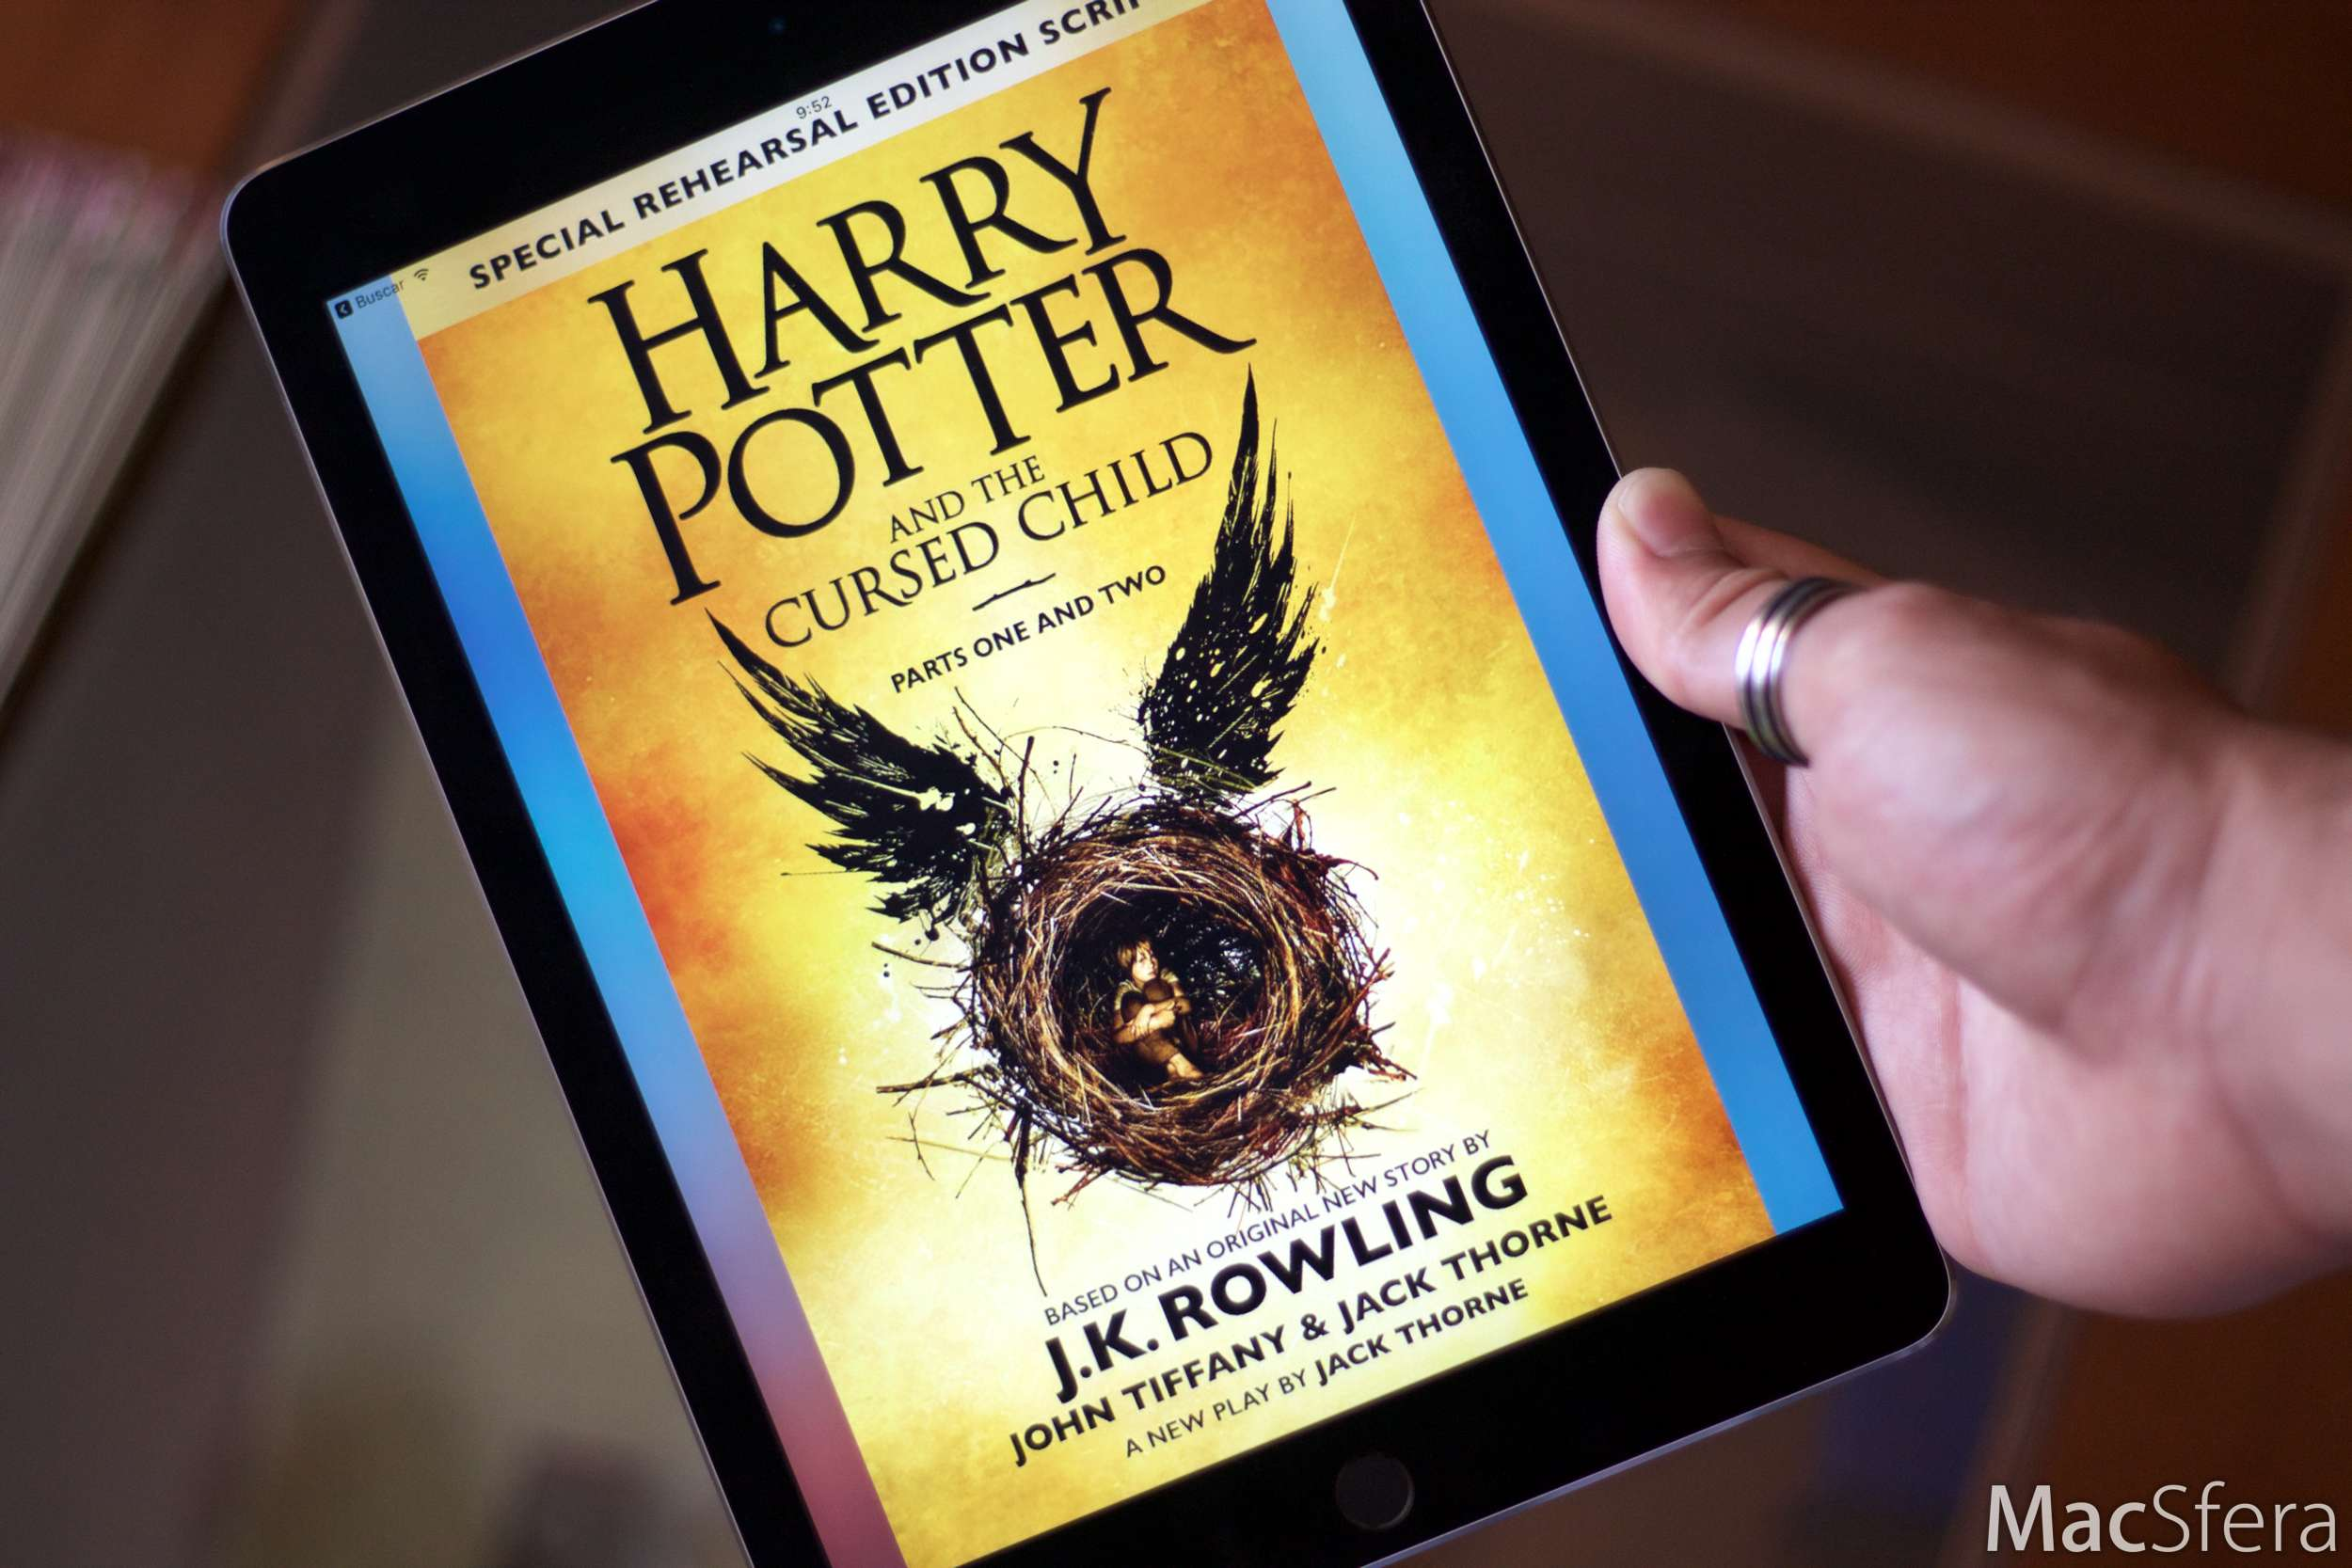 Octavo Libro De Harry Potter Harry Potter And The Cursed Child Llega A La Ibooks Store